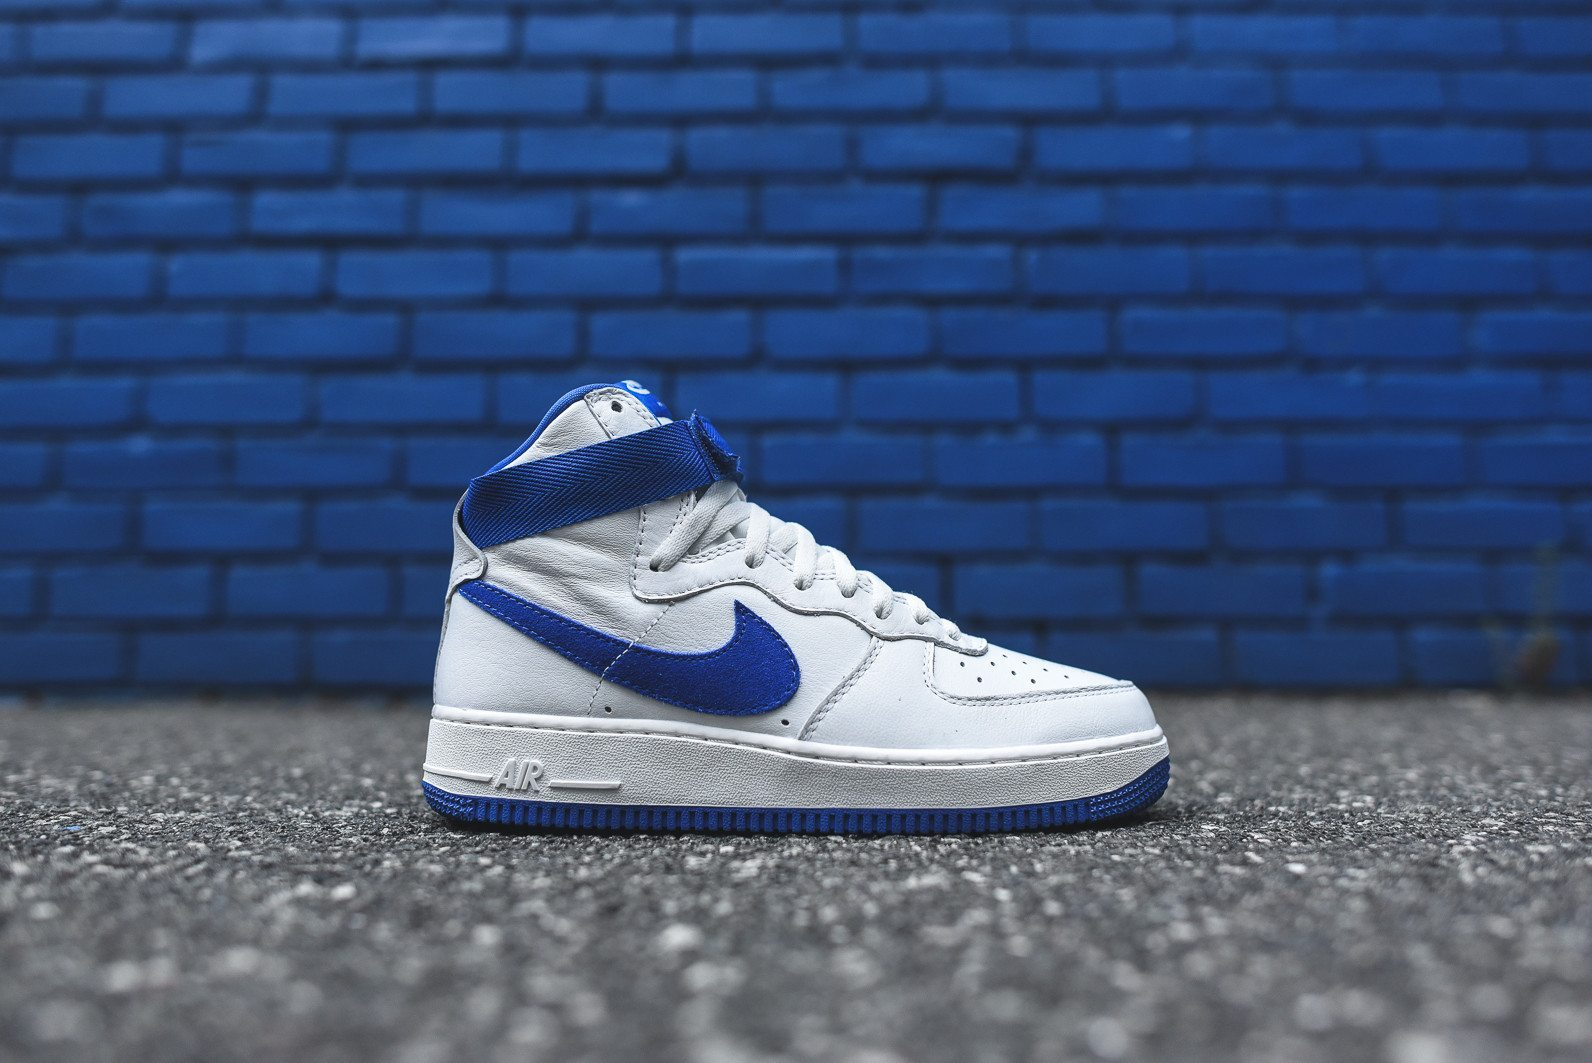 Nike Air Force 1 Hi Retro White Game Royal 2